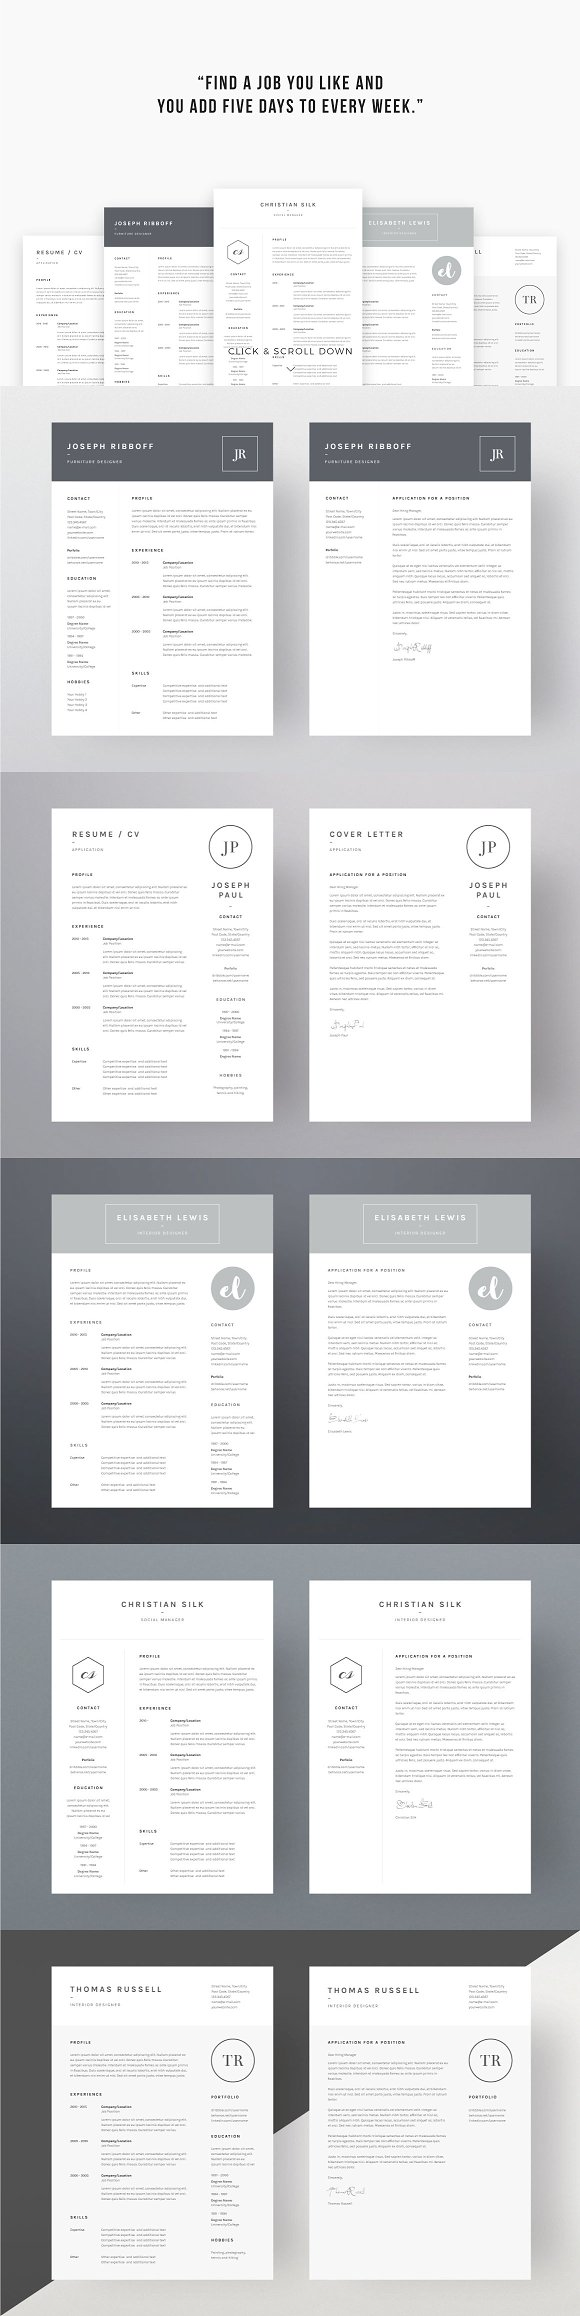 job seekers dream bundle resume templates creative market